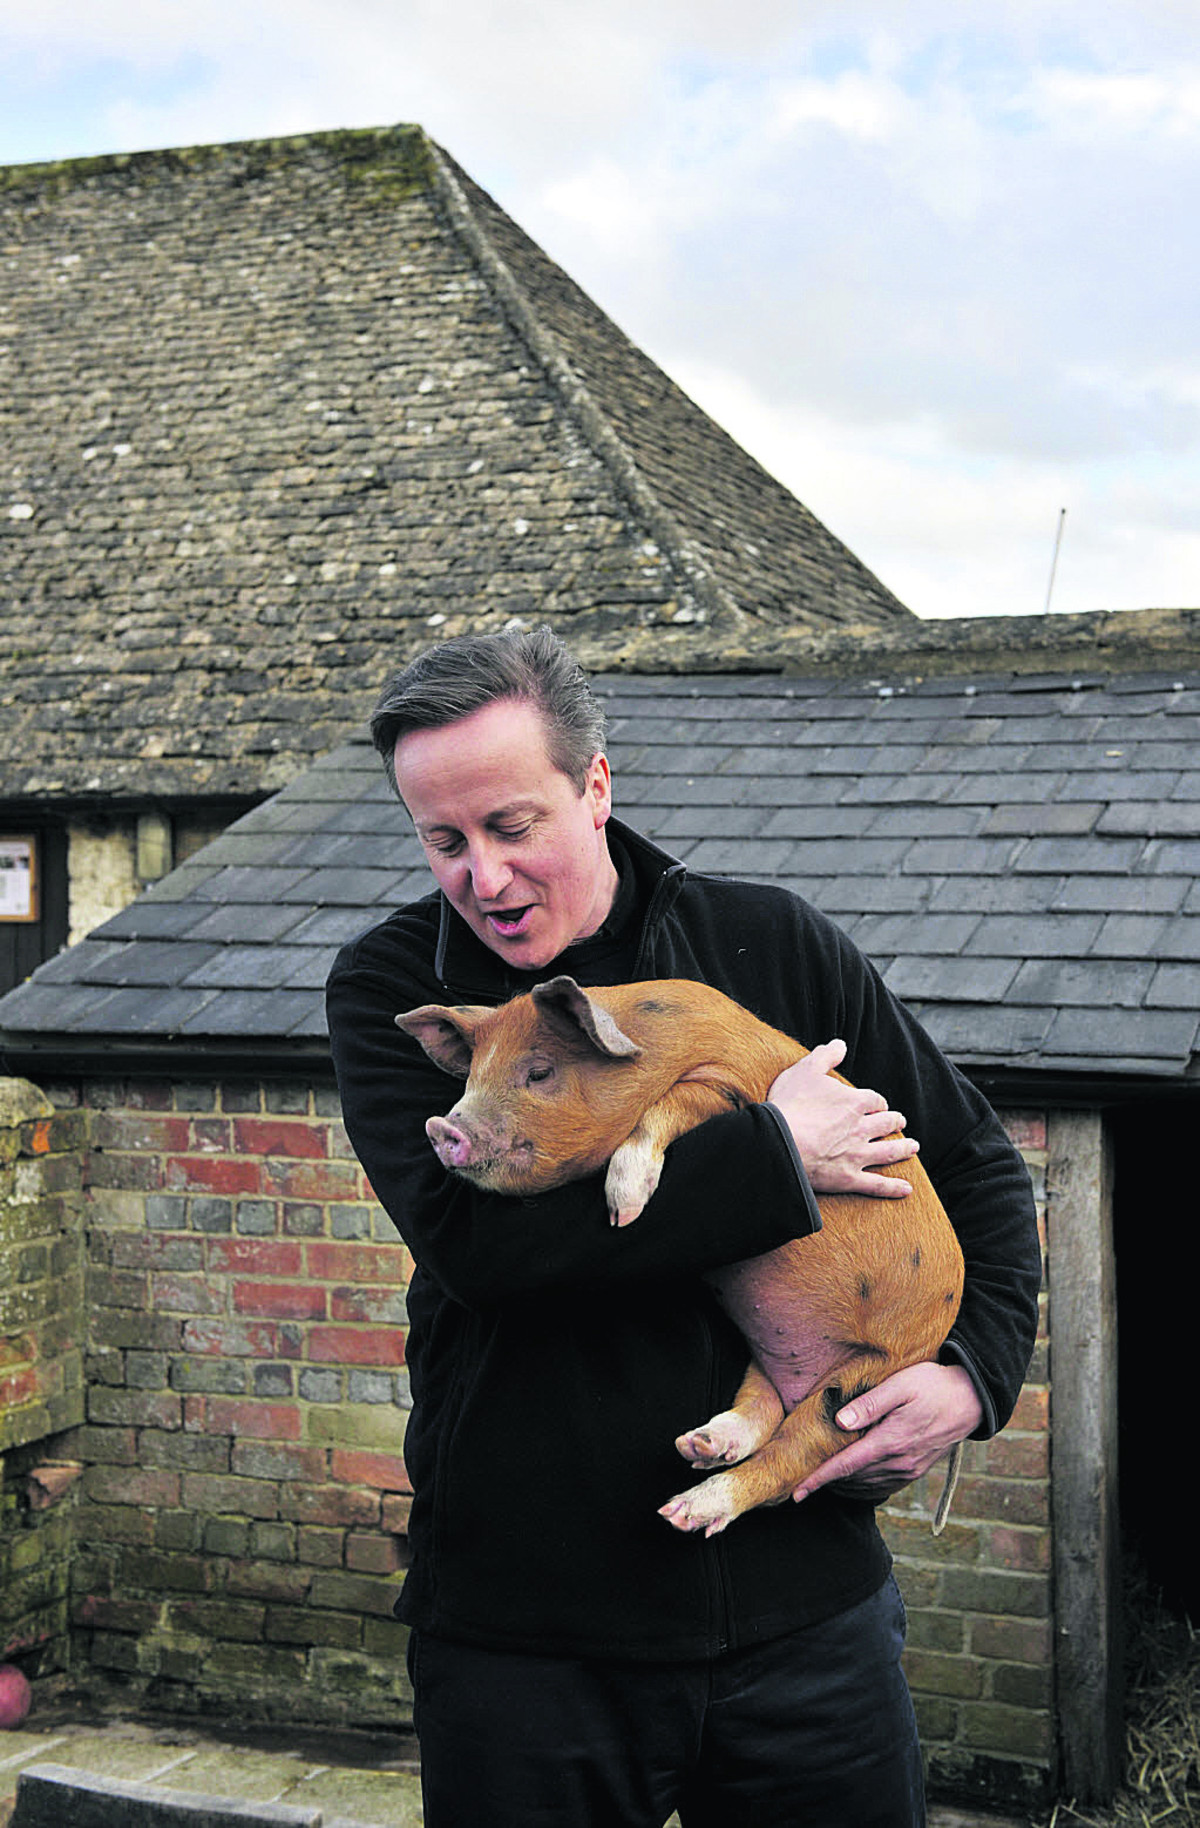 David Cameron with one of the piglets. Picture: OX66114 Mark Hemsworth